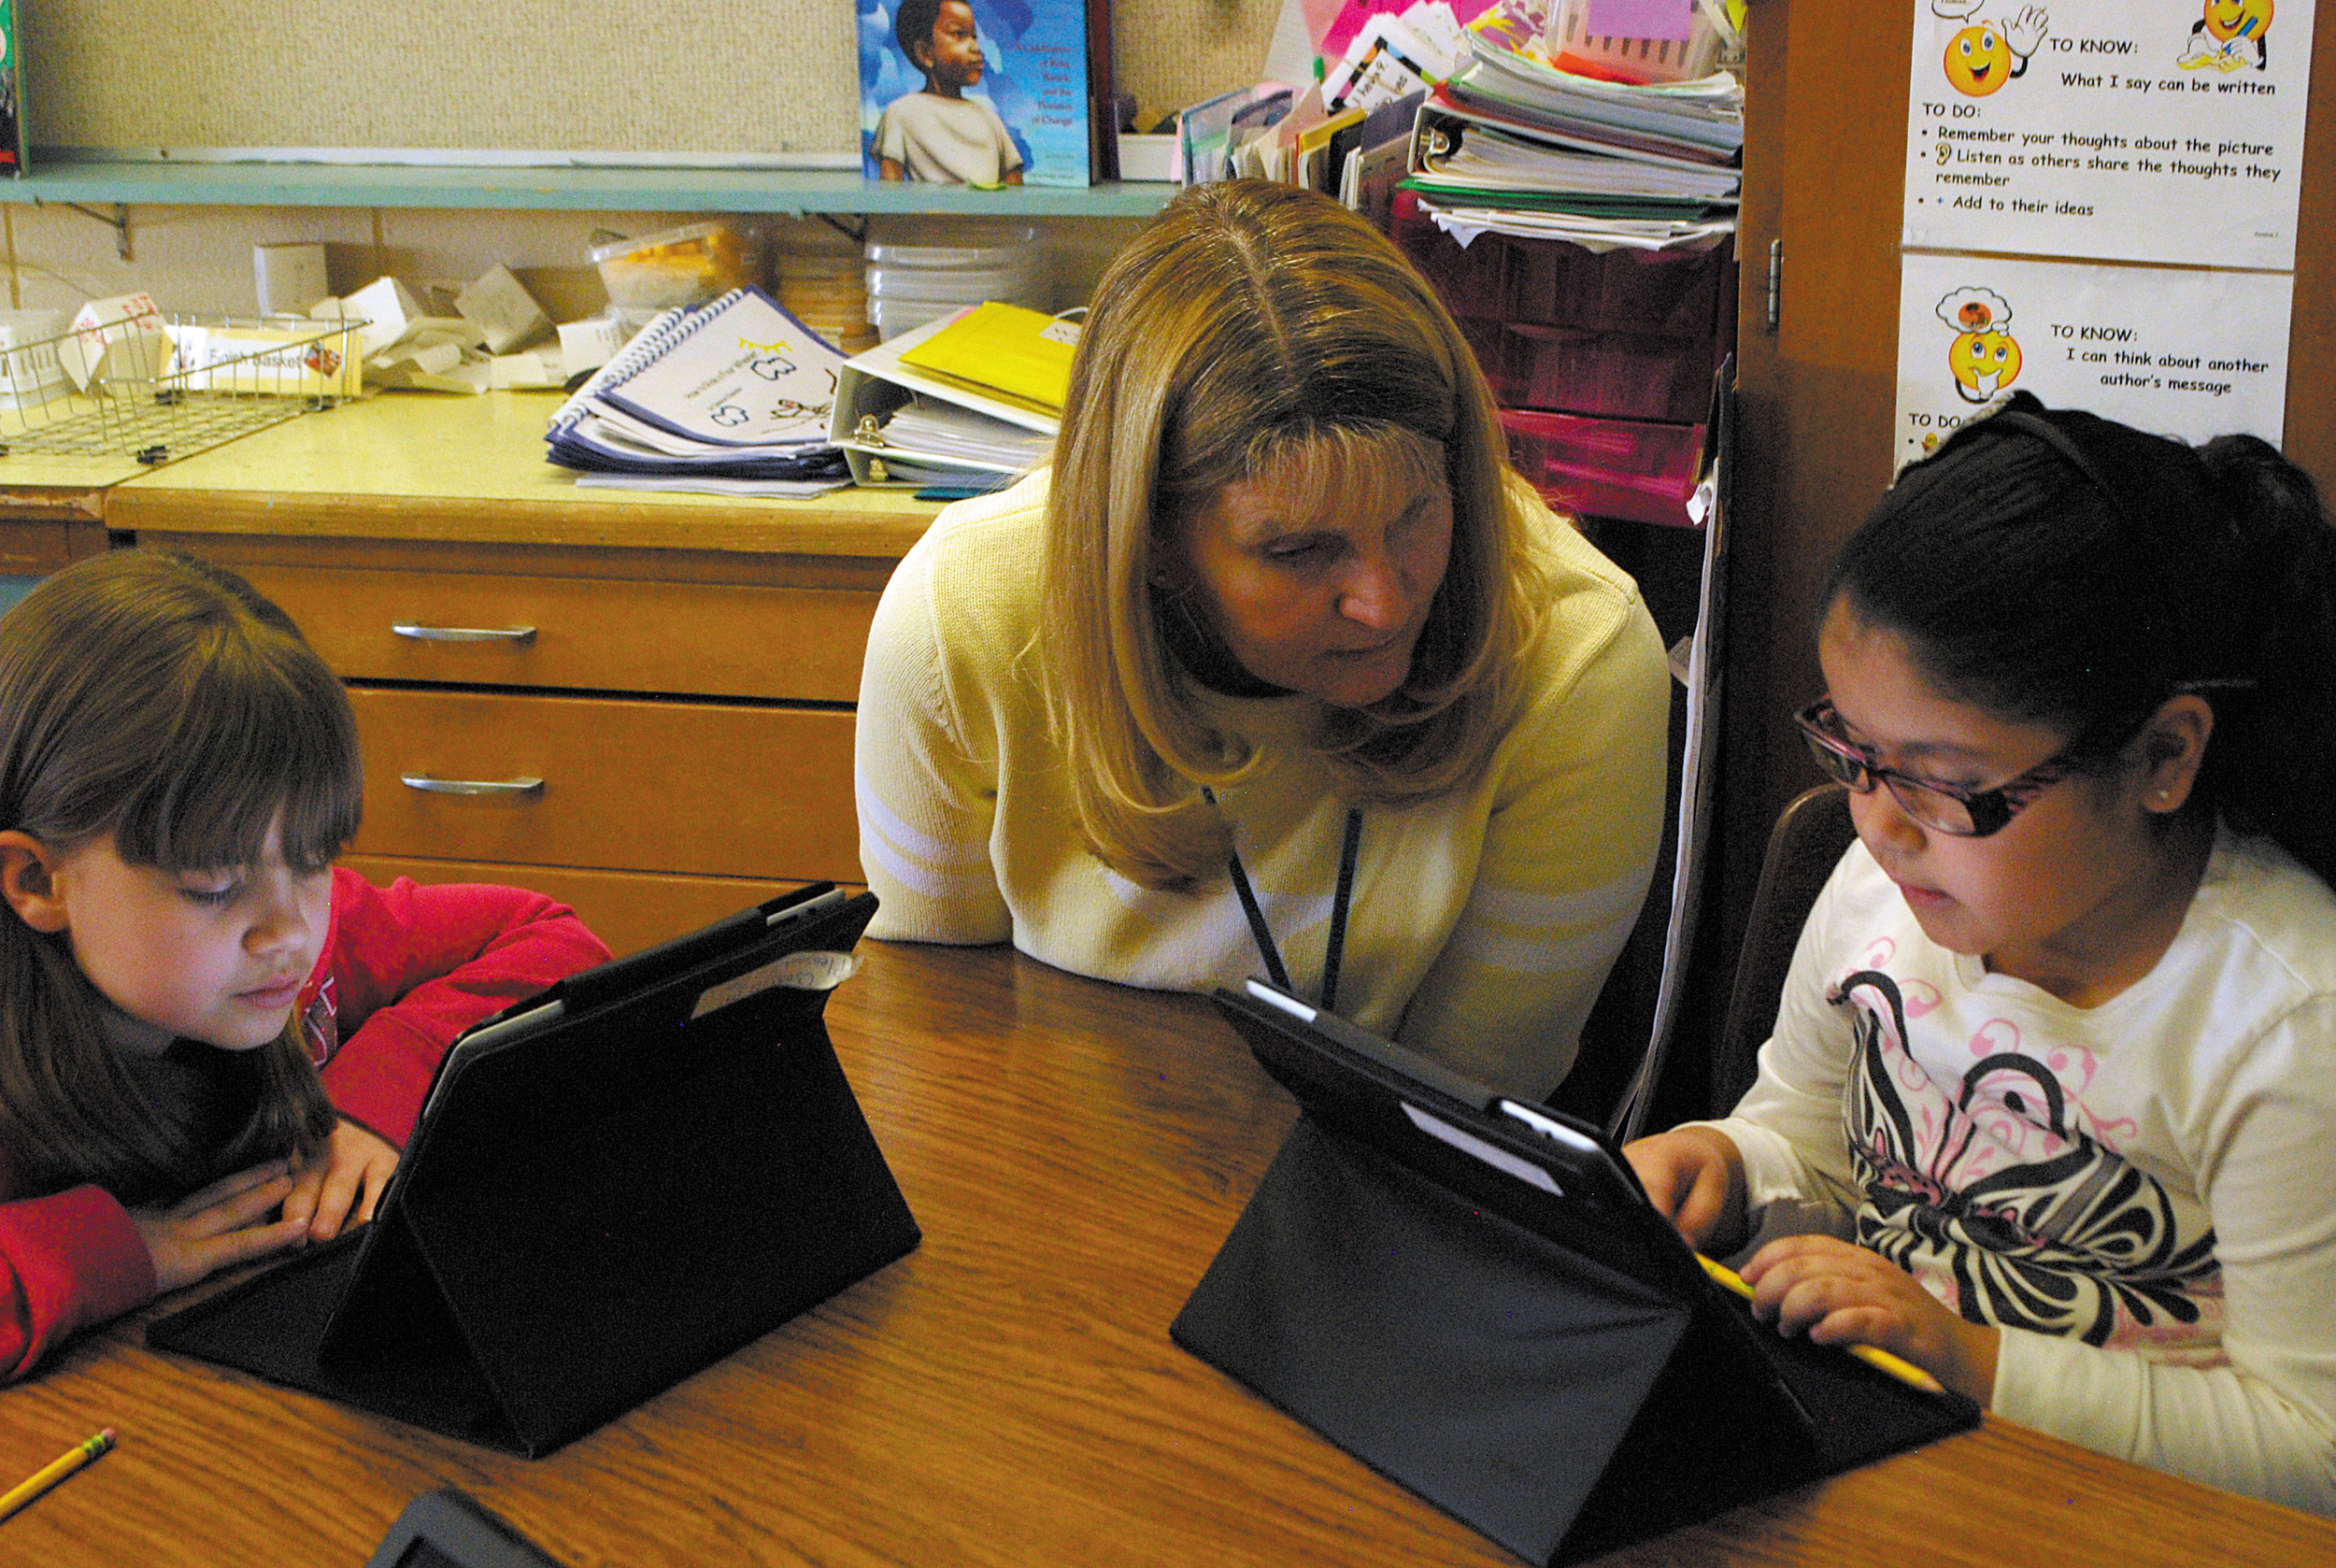 Leslie Ortiz-Lopez, left, and Cindy Villaba, far right, sit at the iPad station with their teacher Mrs. Parrish to read a book followed by discussion and assignments related to their reading.